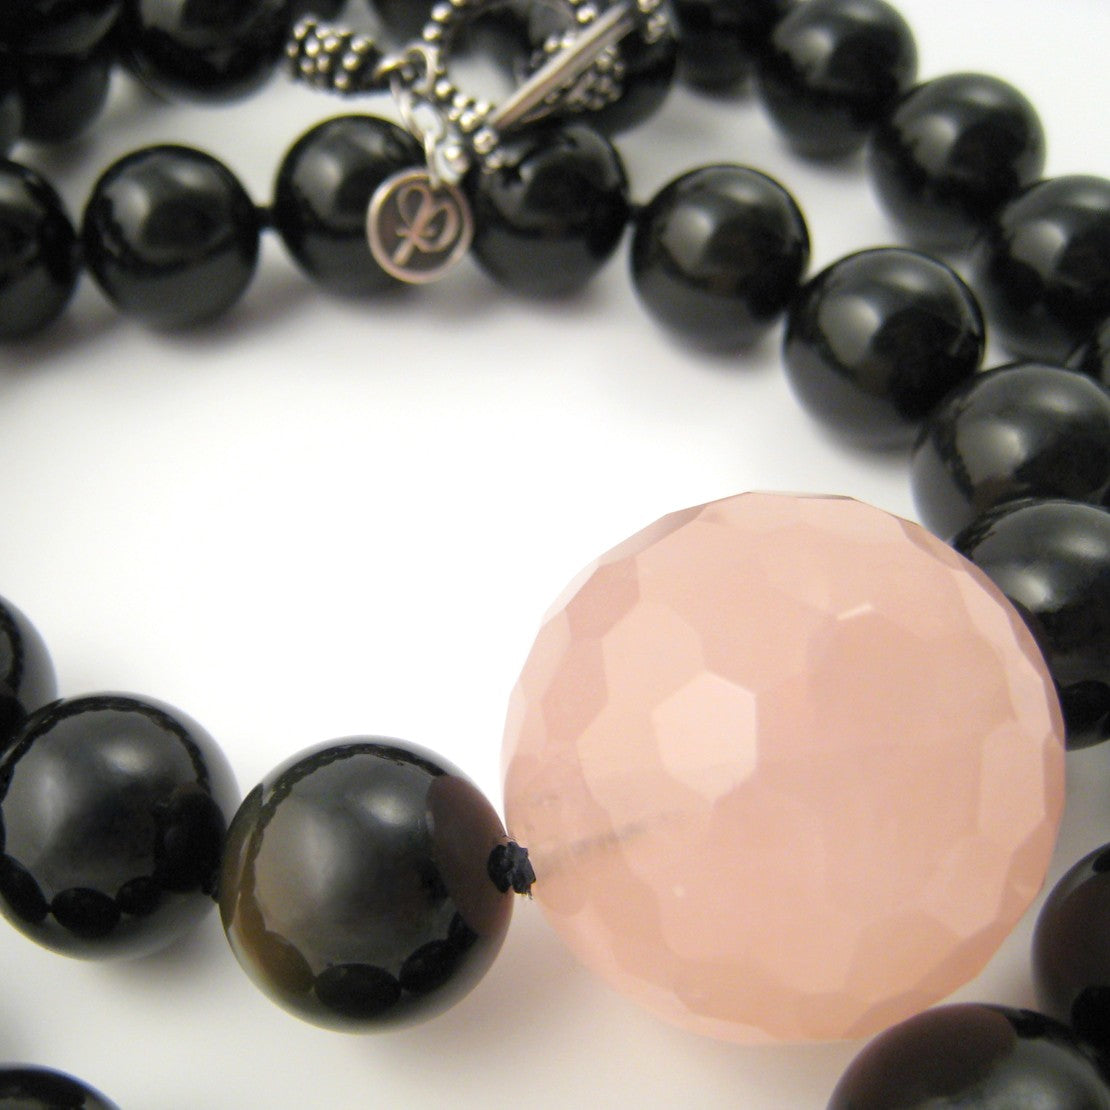 The Black Orb Necklace